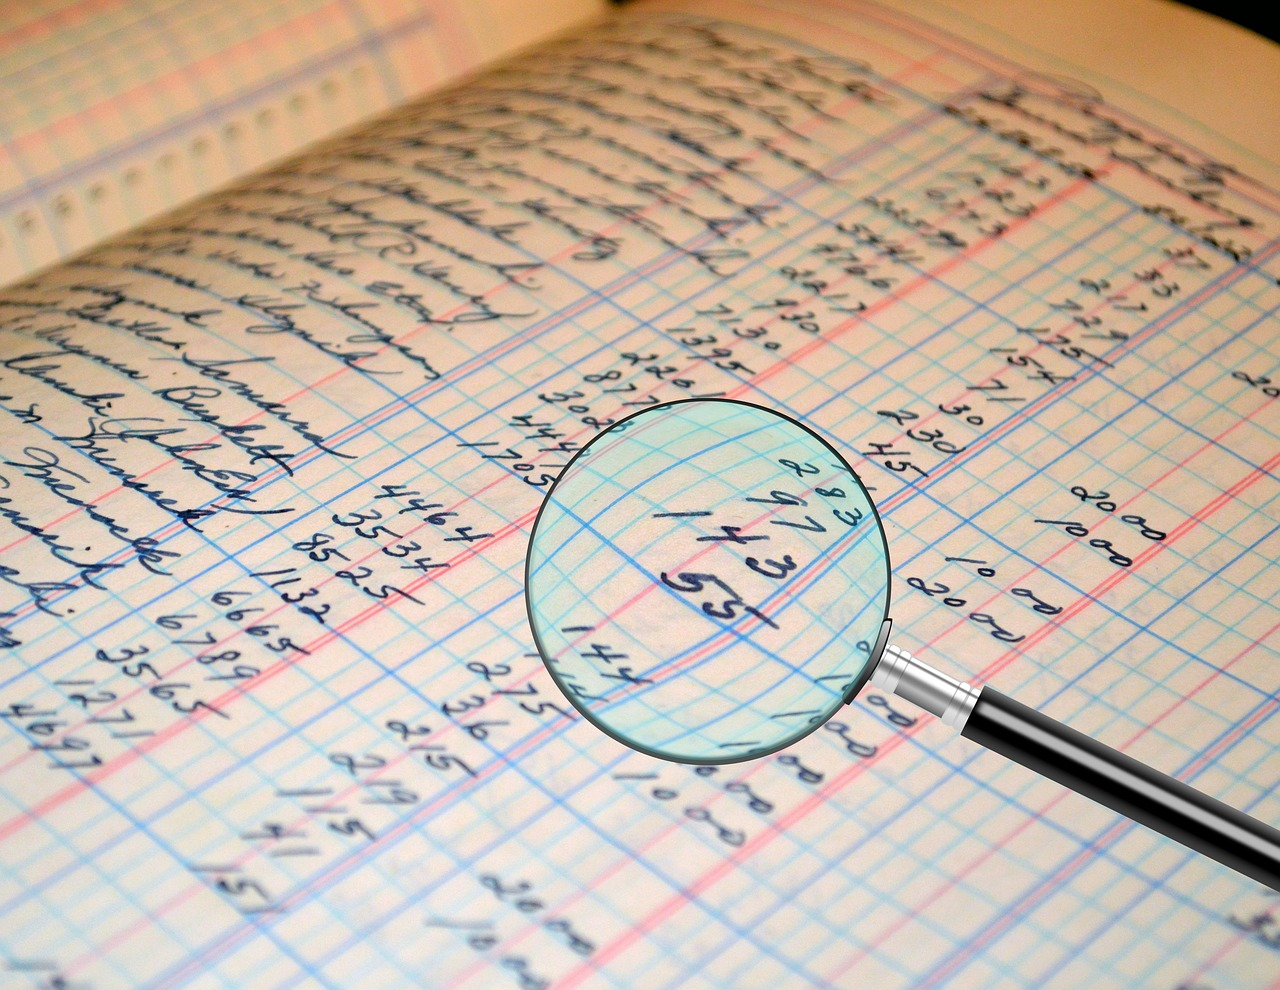 Audit Accounting Ledger Figures  - Tumisu / Pixabay